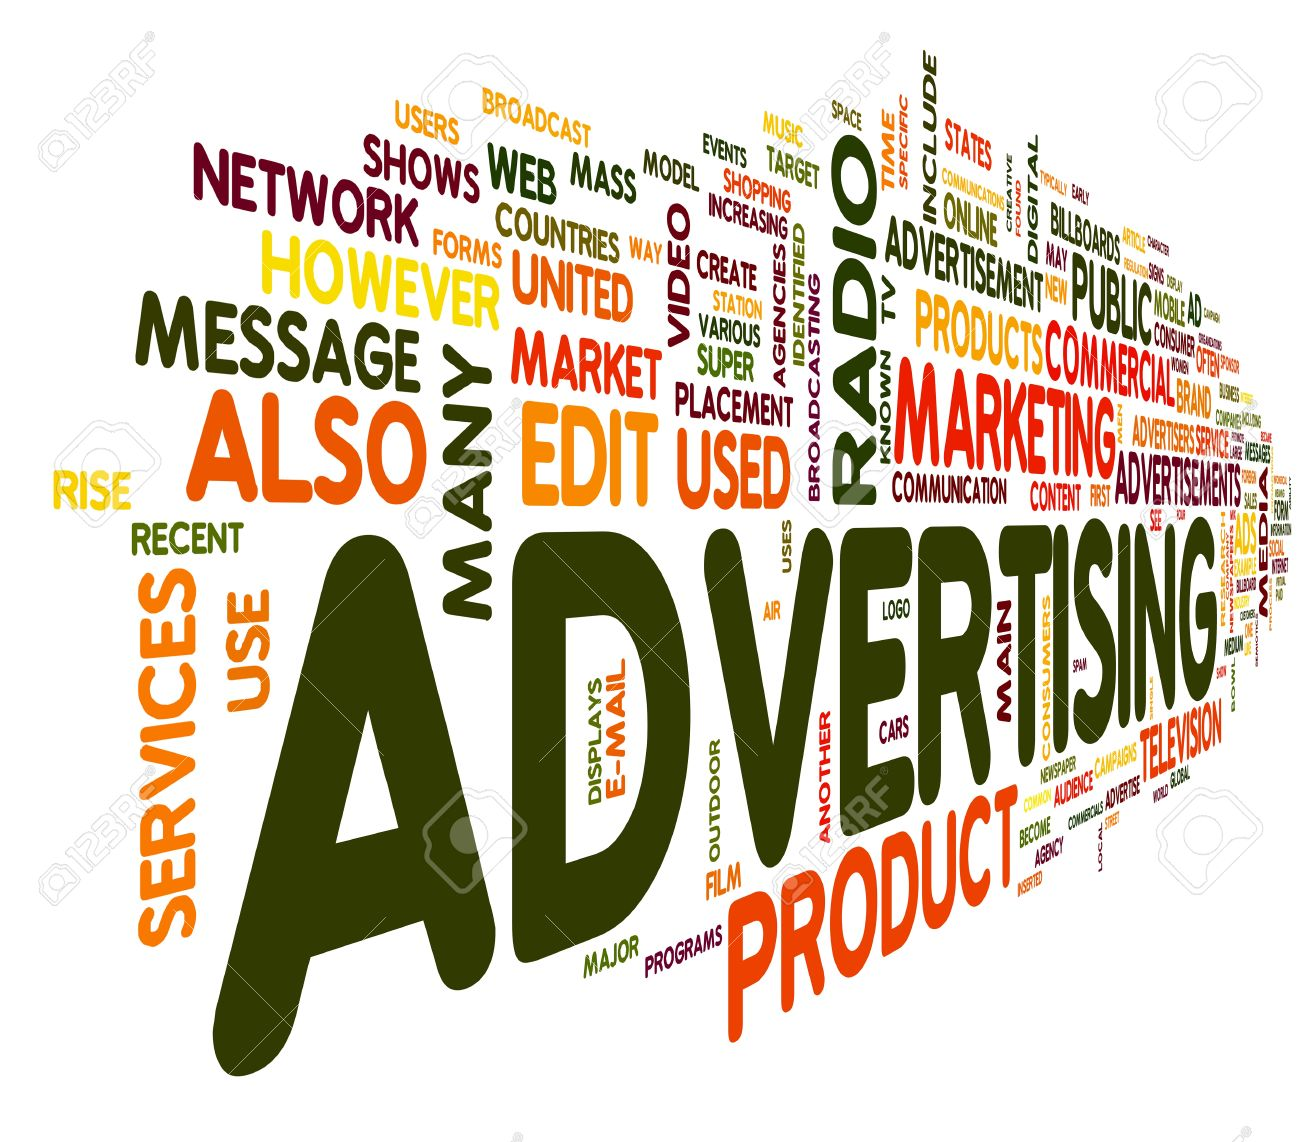 Let us help you get more customers, leads and potential sales with Paid Advertisements.